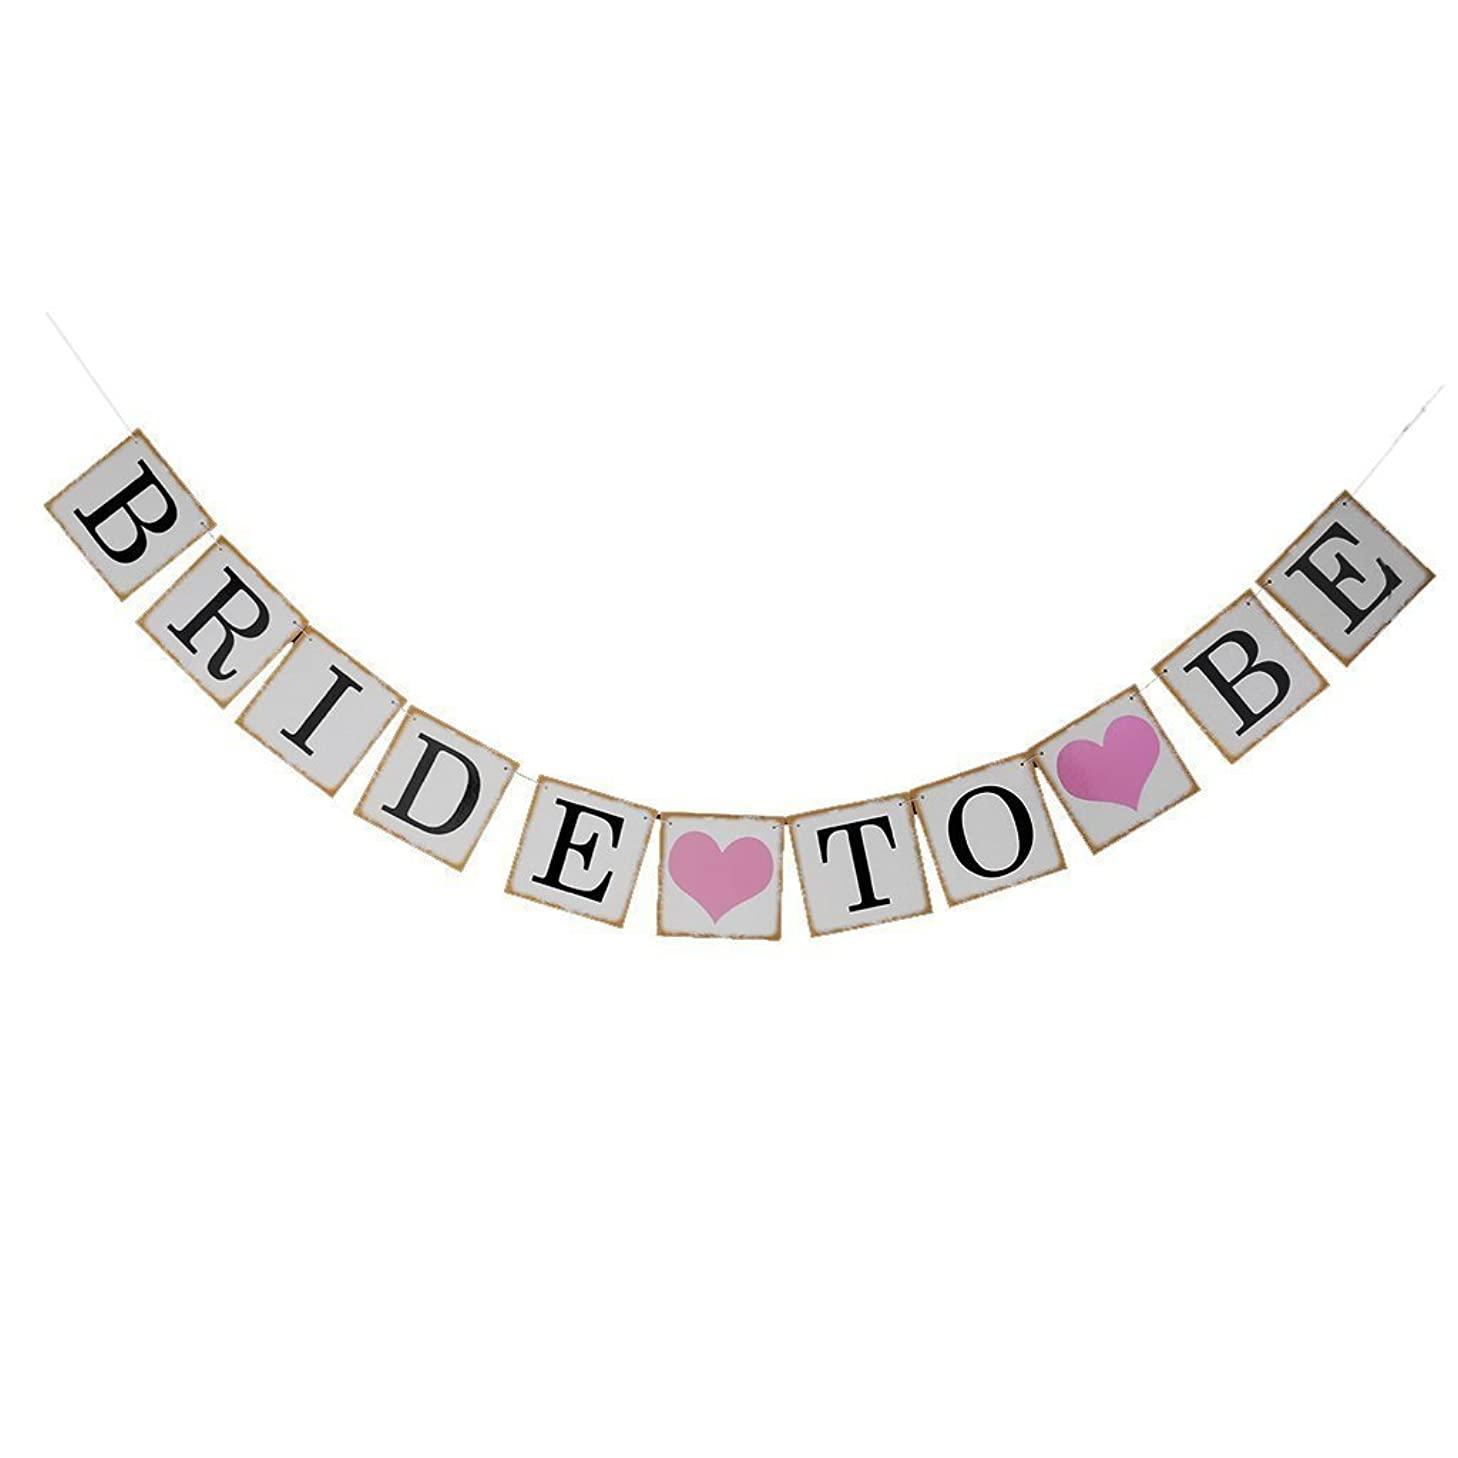 Moonee Bride to Be Wedding Banner with Rose Glitter Heart - Bride Garland Wedding Sign Photo Prop Wedding Party Decoration